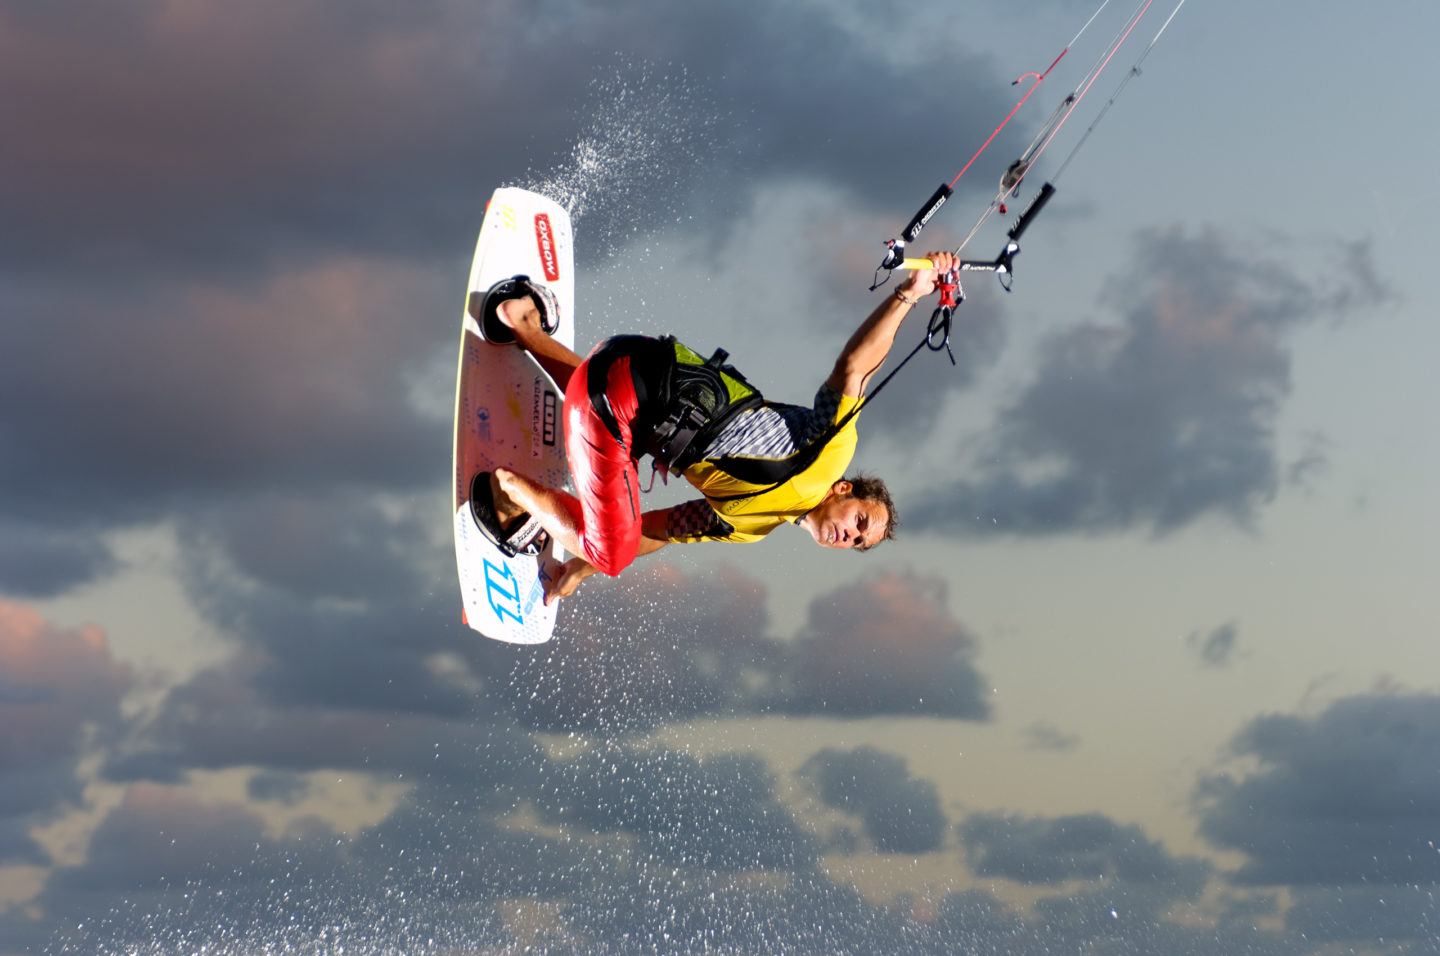 Kitesurfer Jérémie Eloy in action for Nikon Pro Magazine by Franck Socha